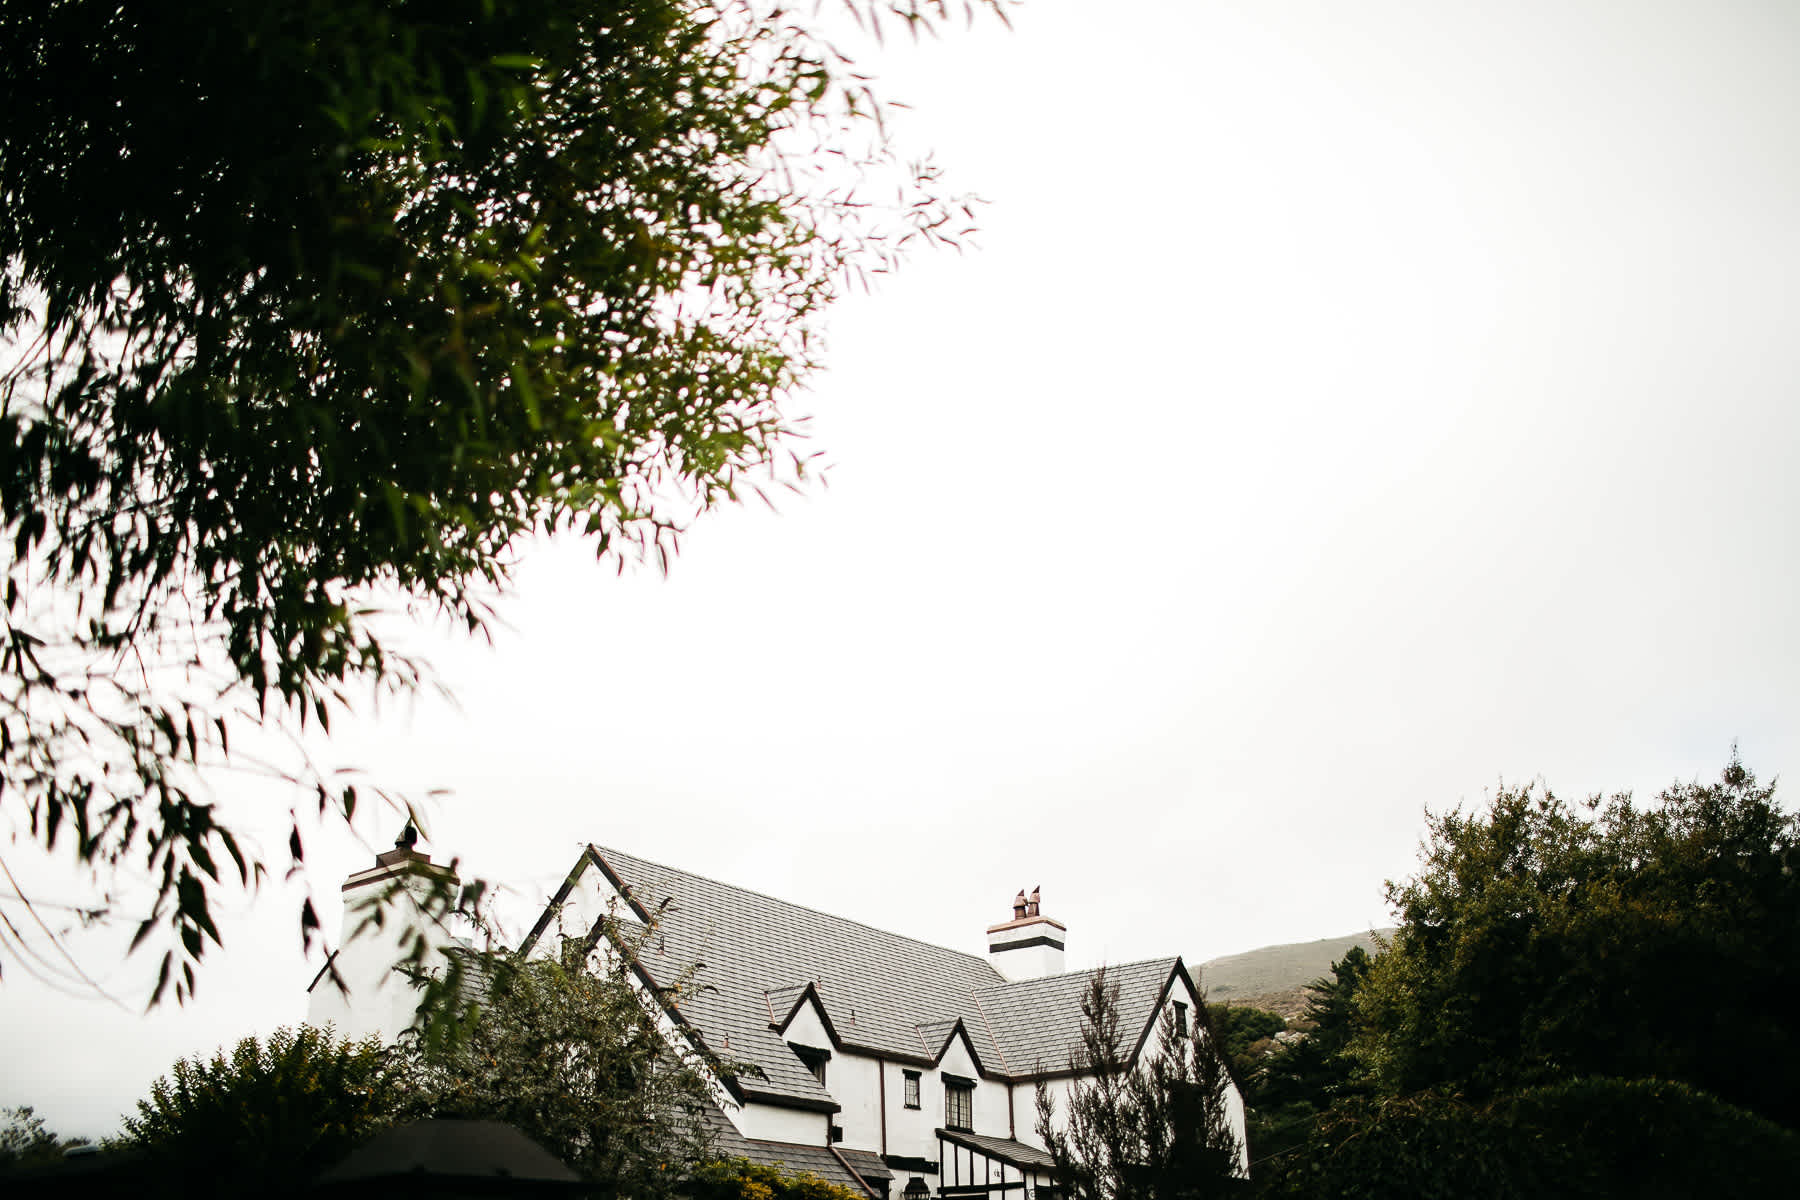 muir-beach-pelican-inn-foggy-wedding-19